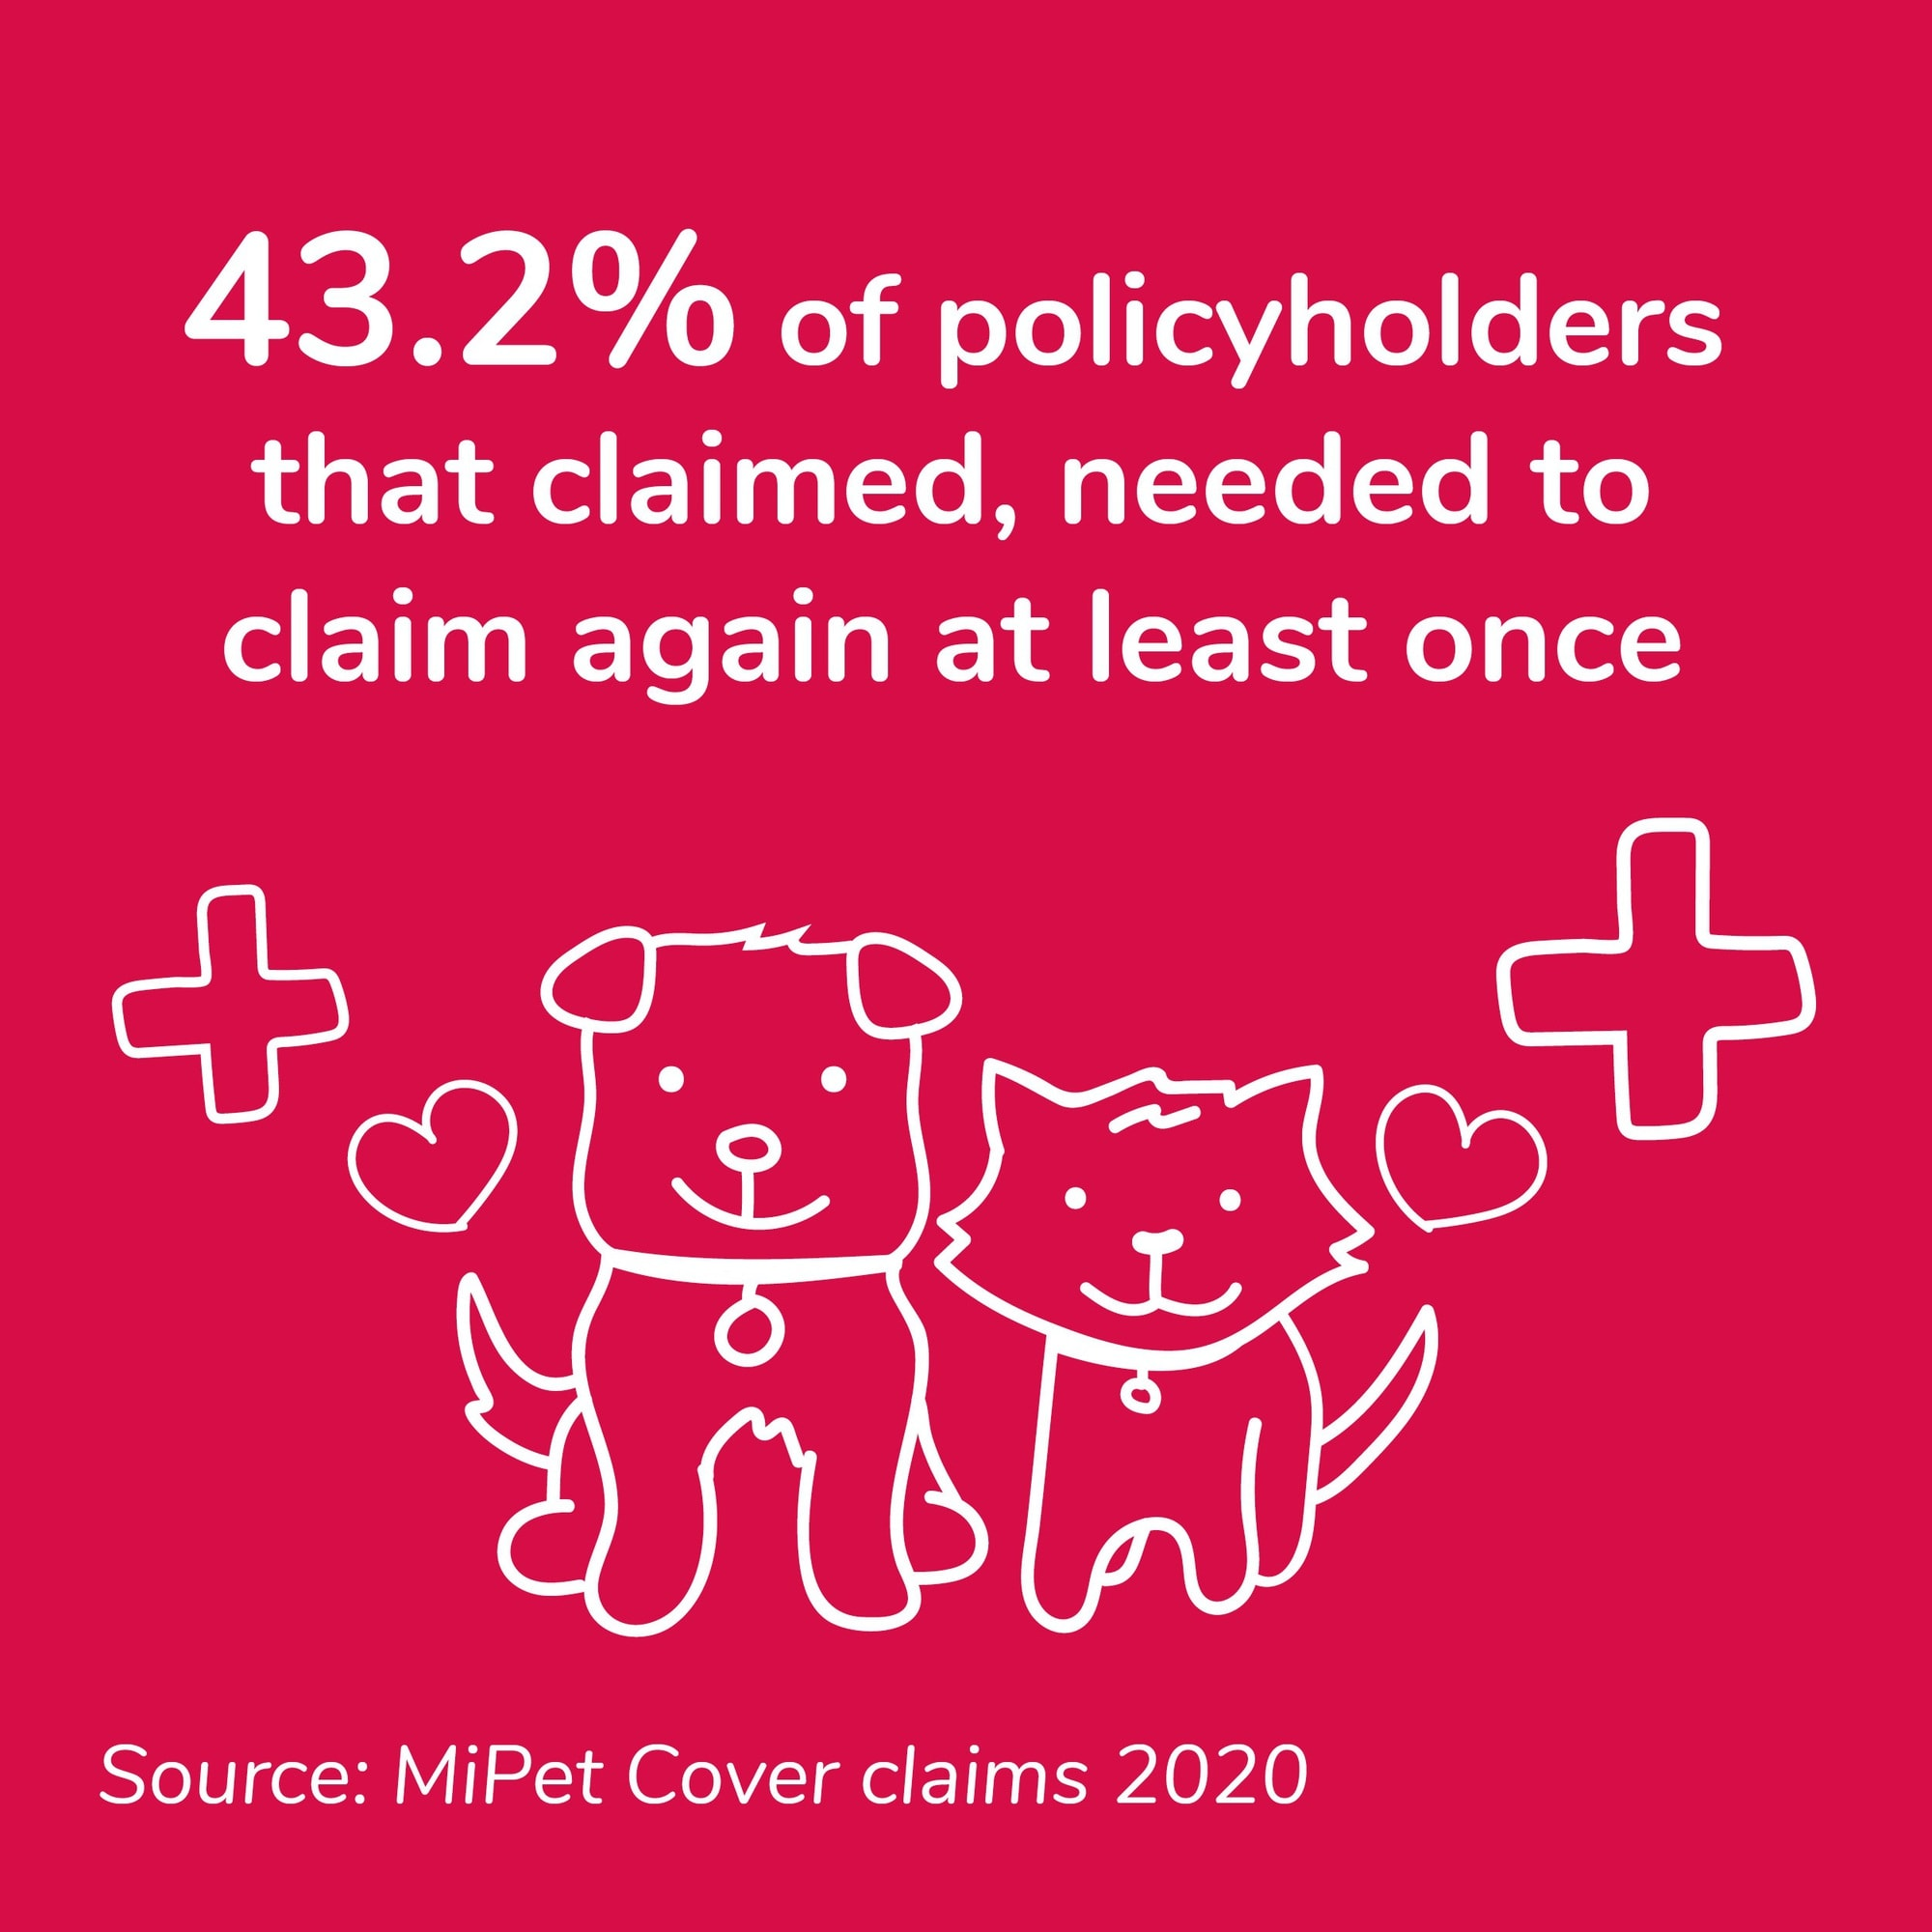 43.2% of MiPet Cover pet insurance policyholders that claimed, needed to claim again in 2020